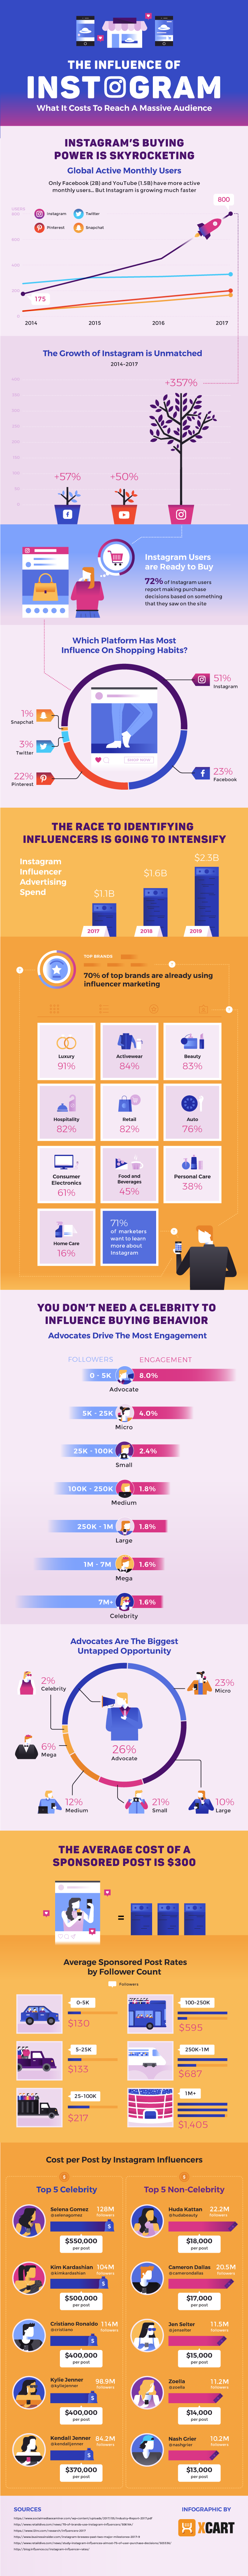 The Influence of Instagram